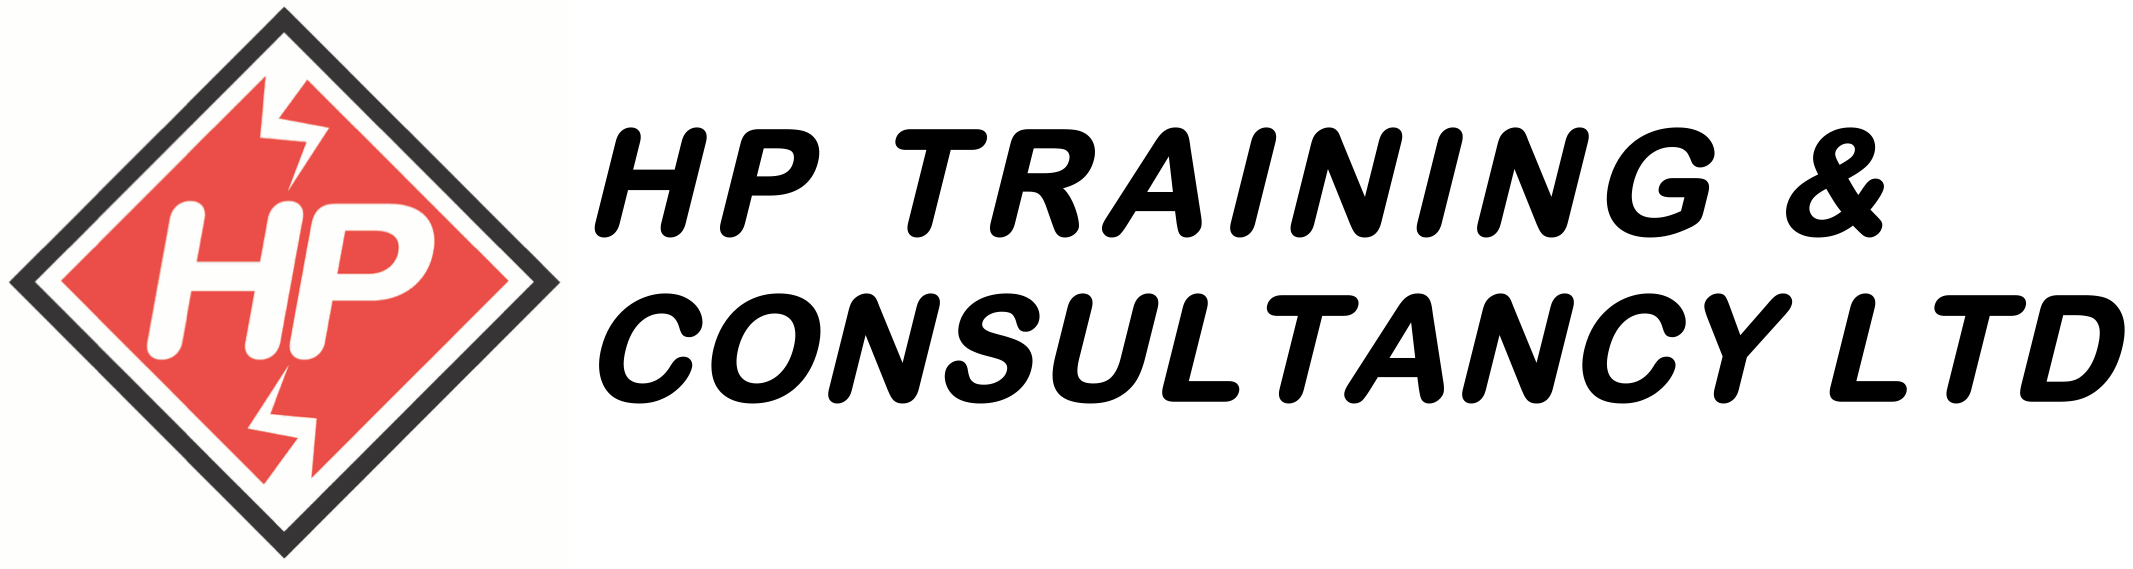 HP Training & Consultancy Ltd Logo